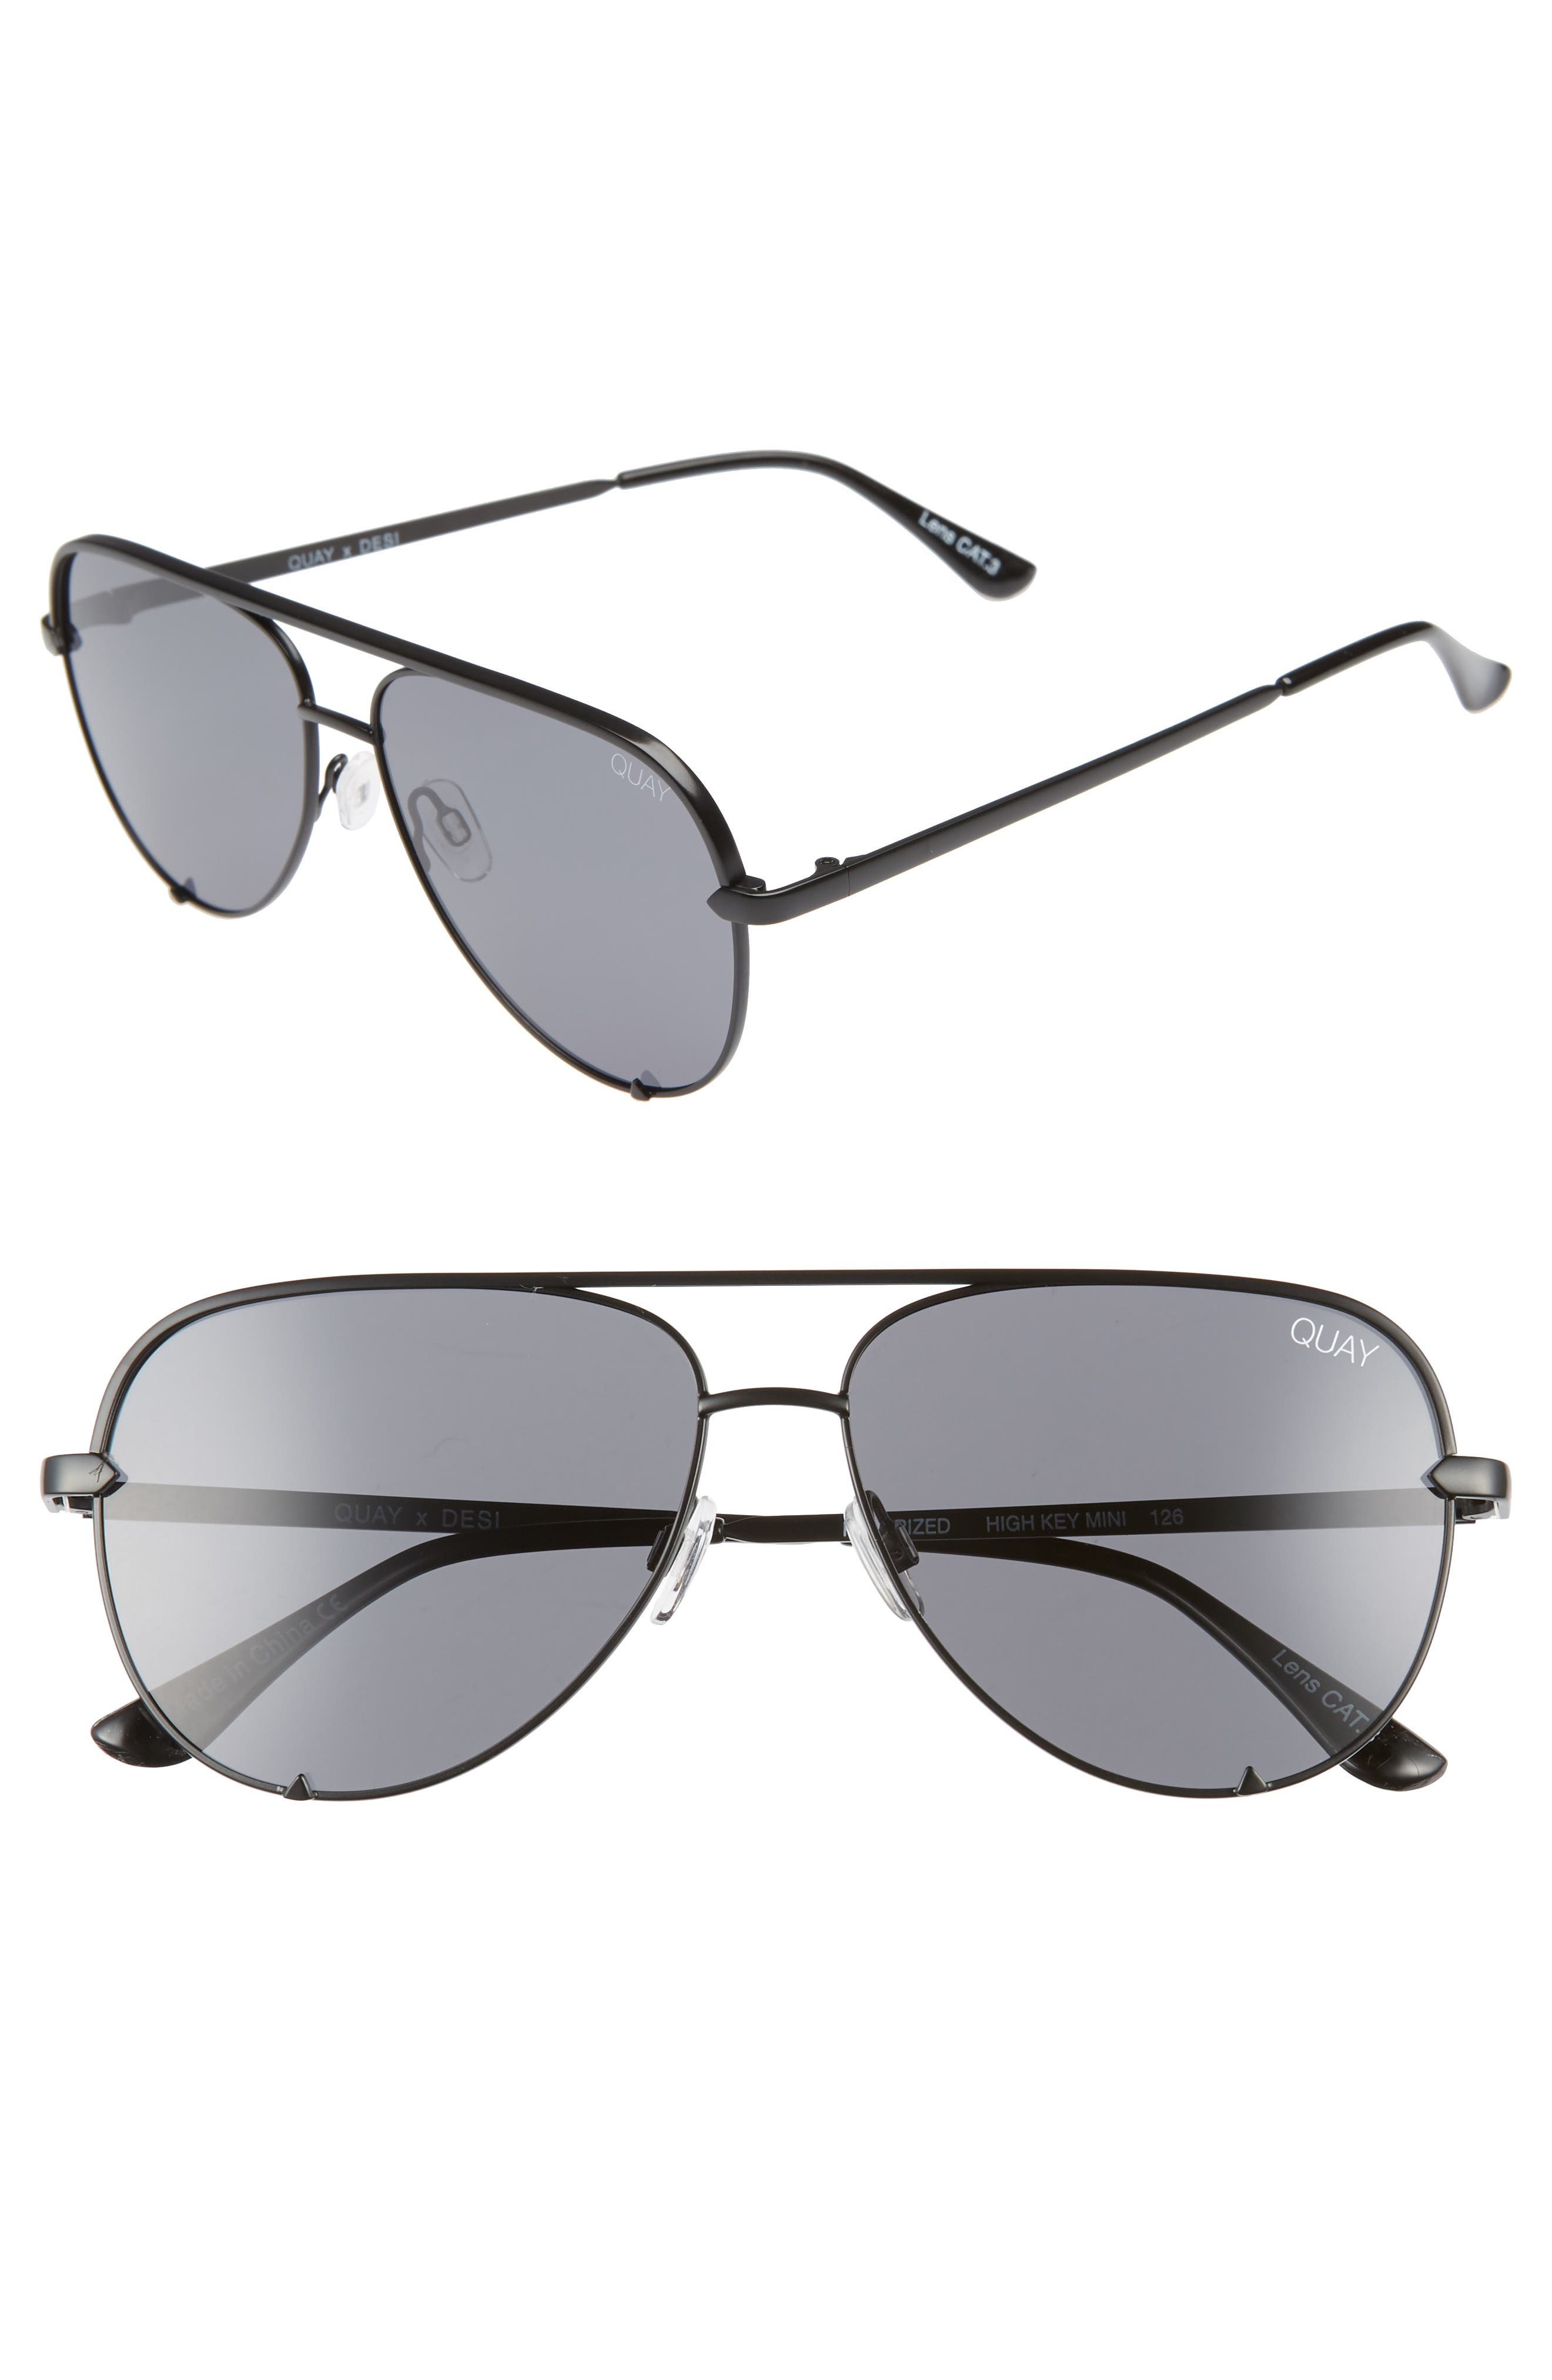 X Desi Perkins High Key Mini 57Mm Aviator Sunglasses - Black/ Smoke